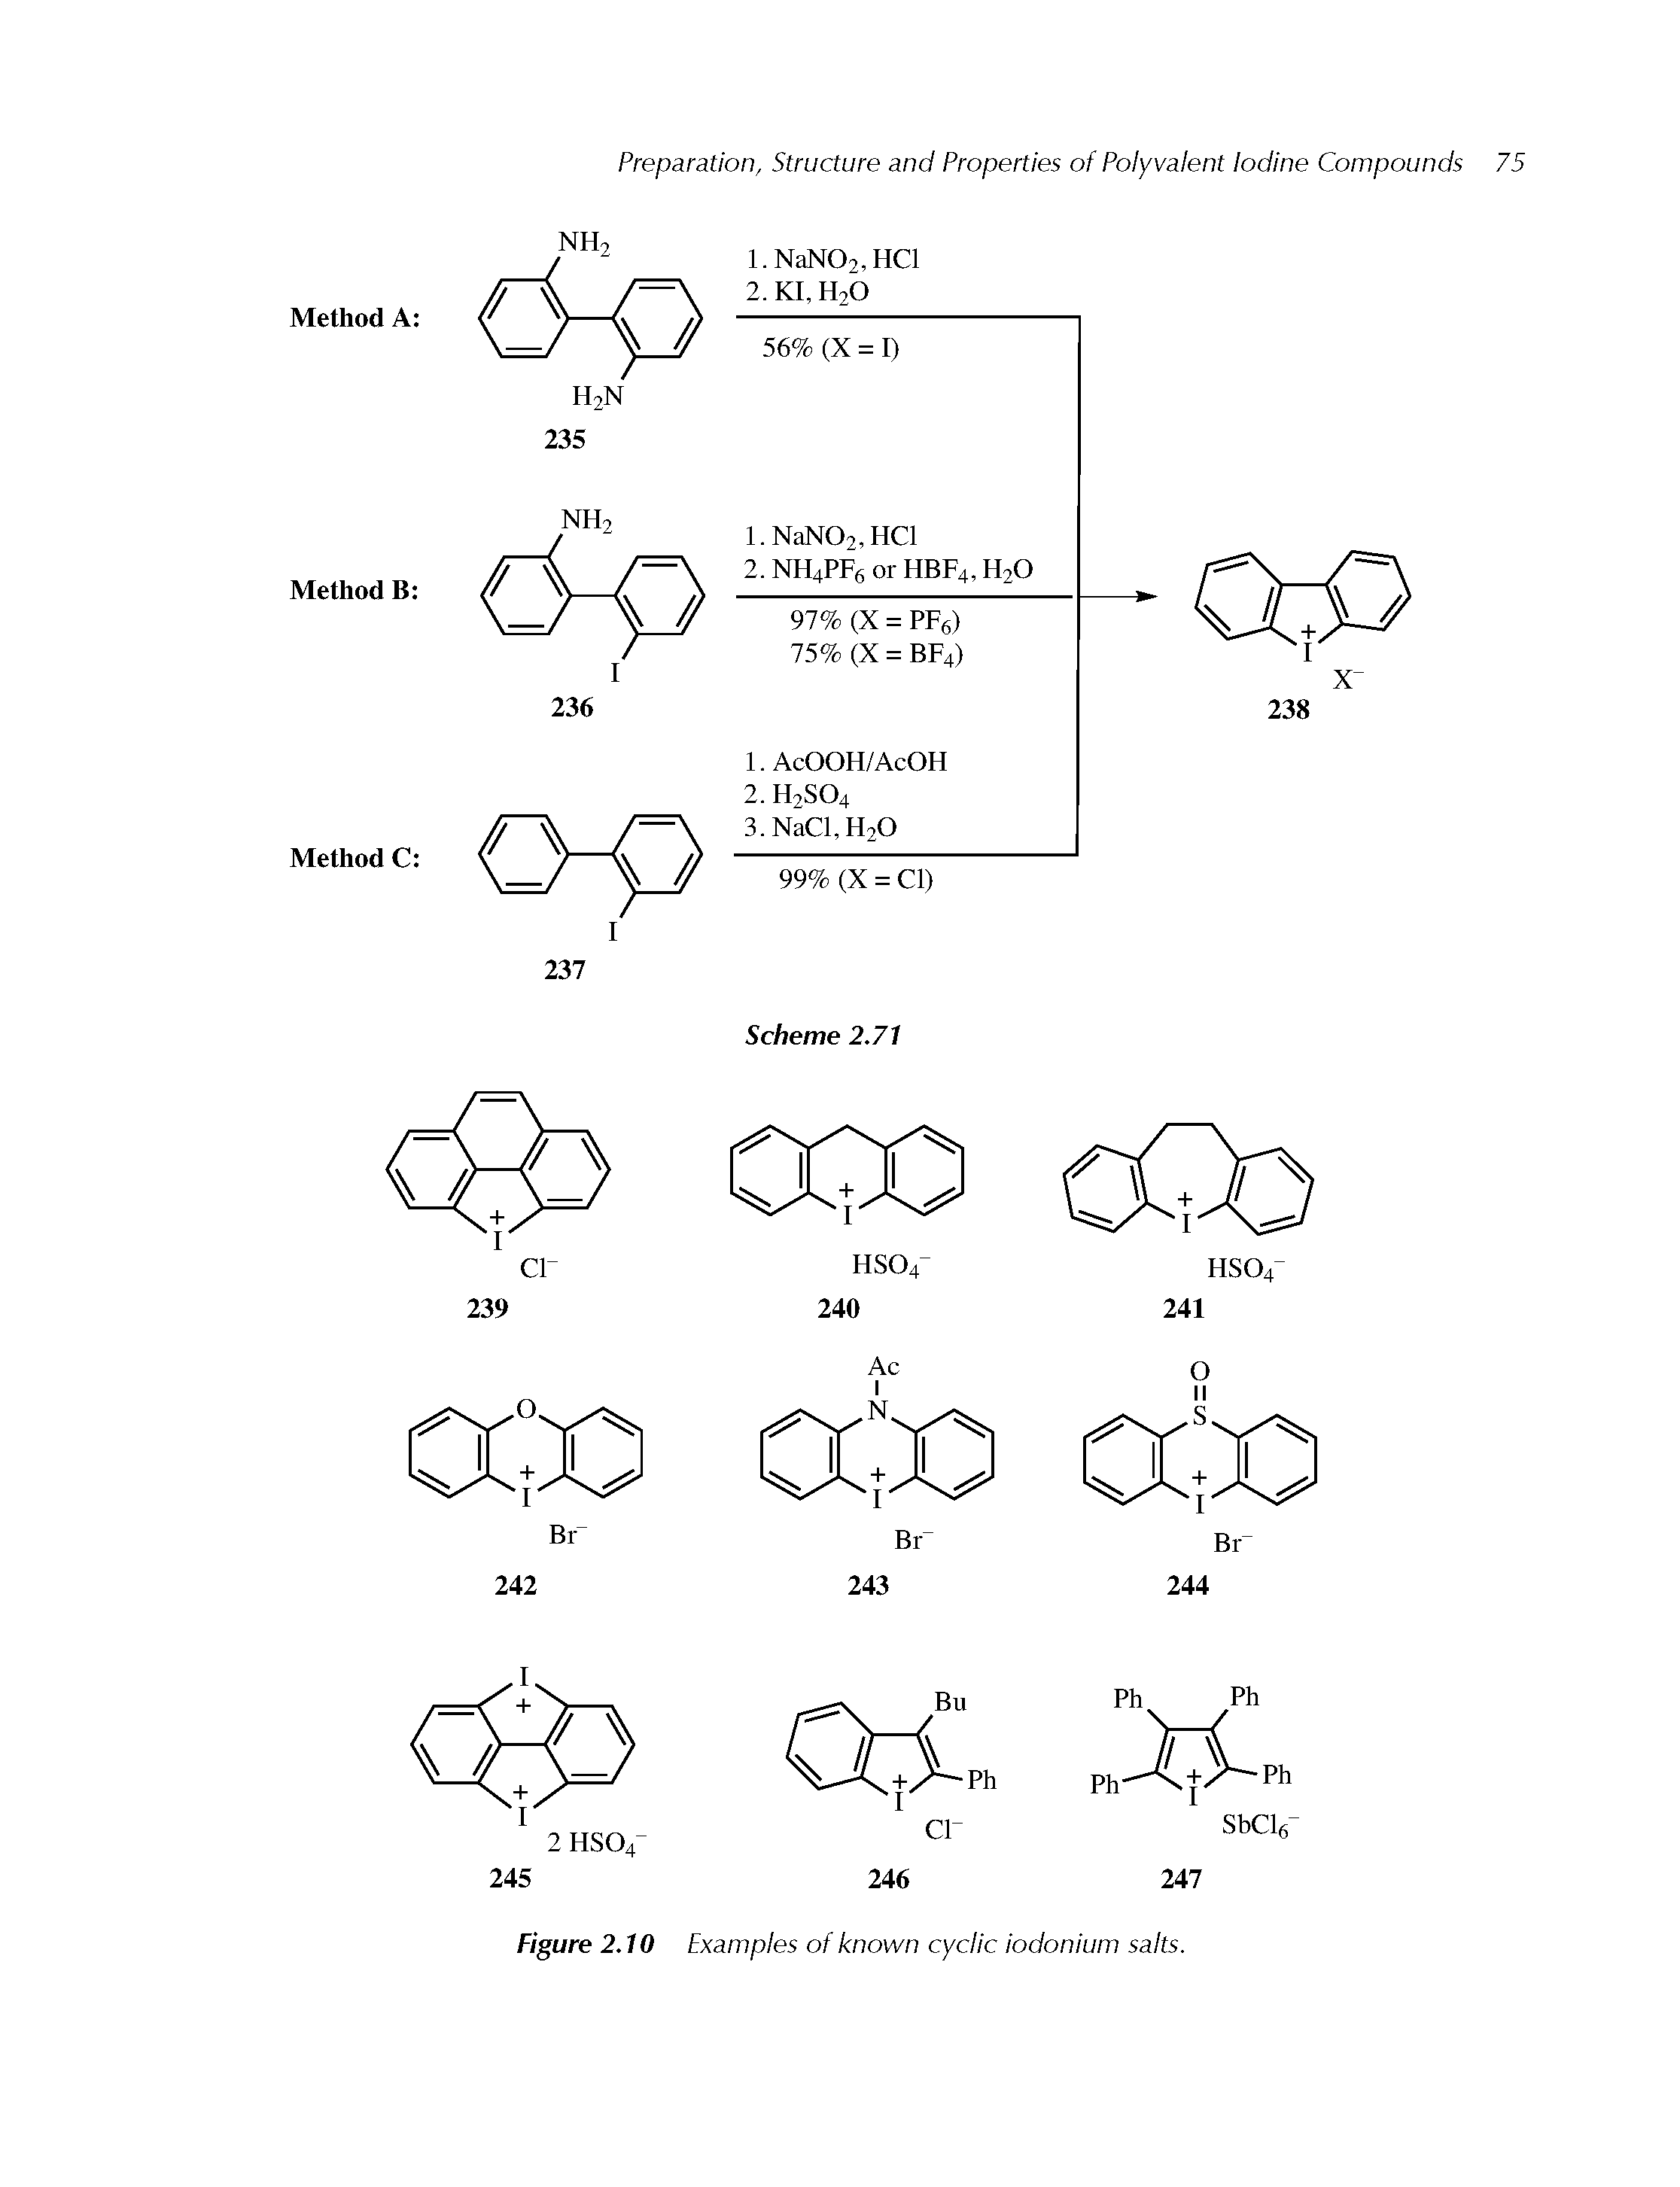 Figure 2.10 Examples of known cyclic iodonium salts.